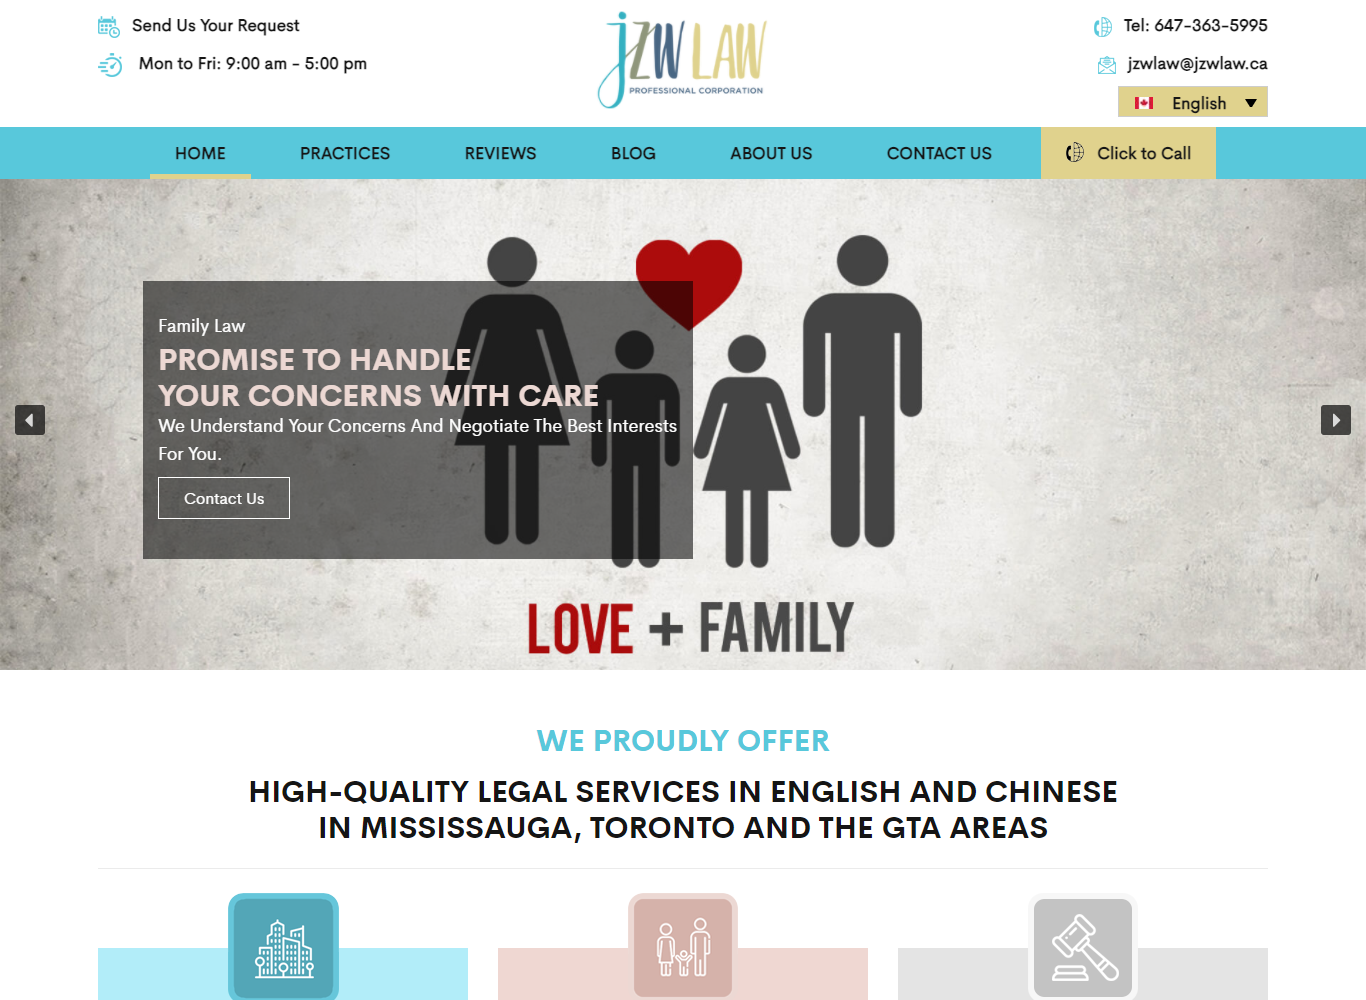 jzwlaw